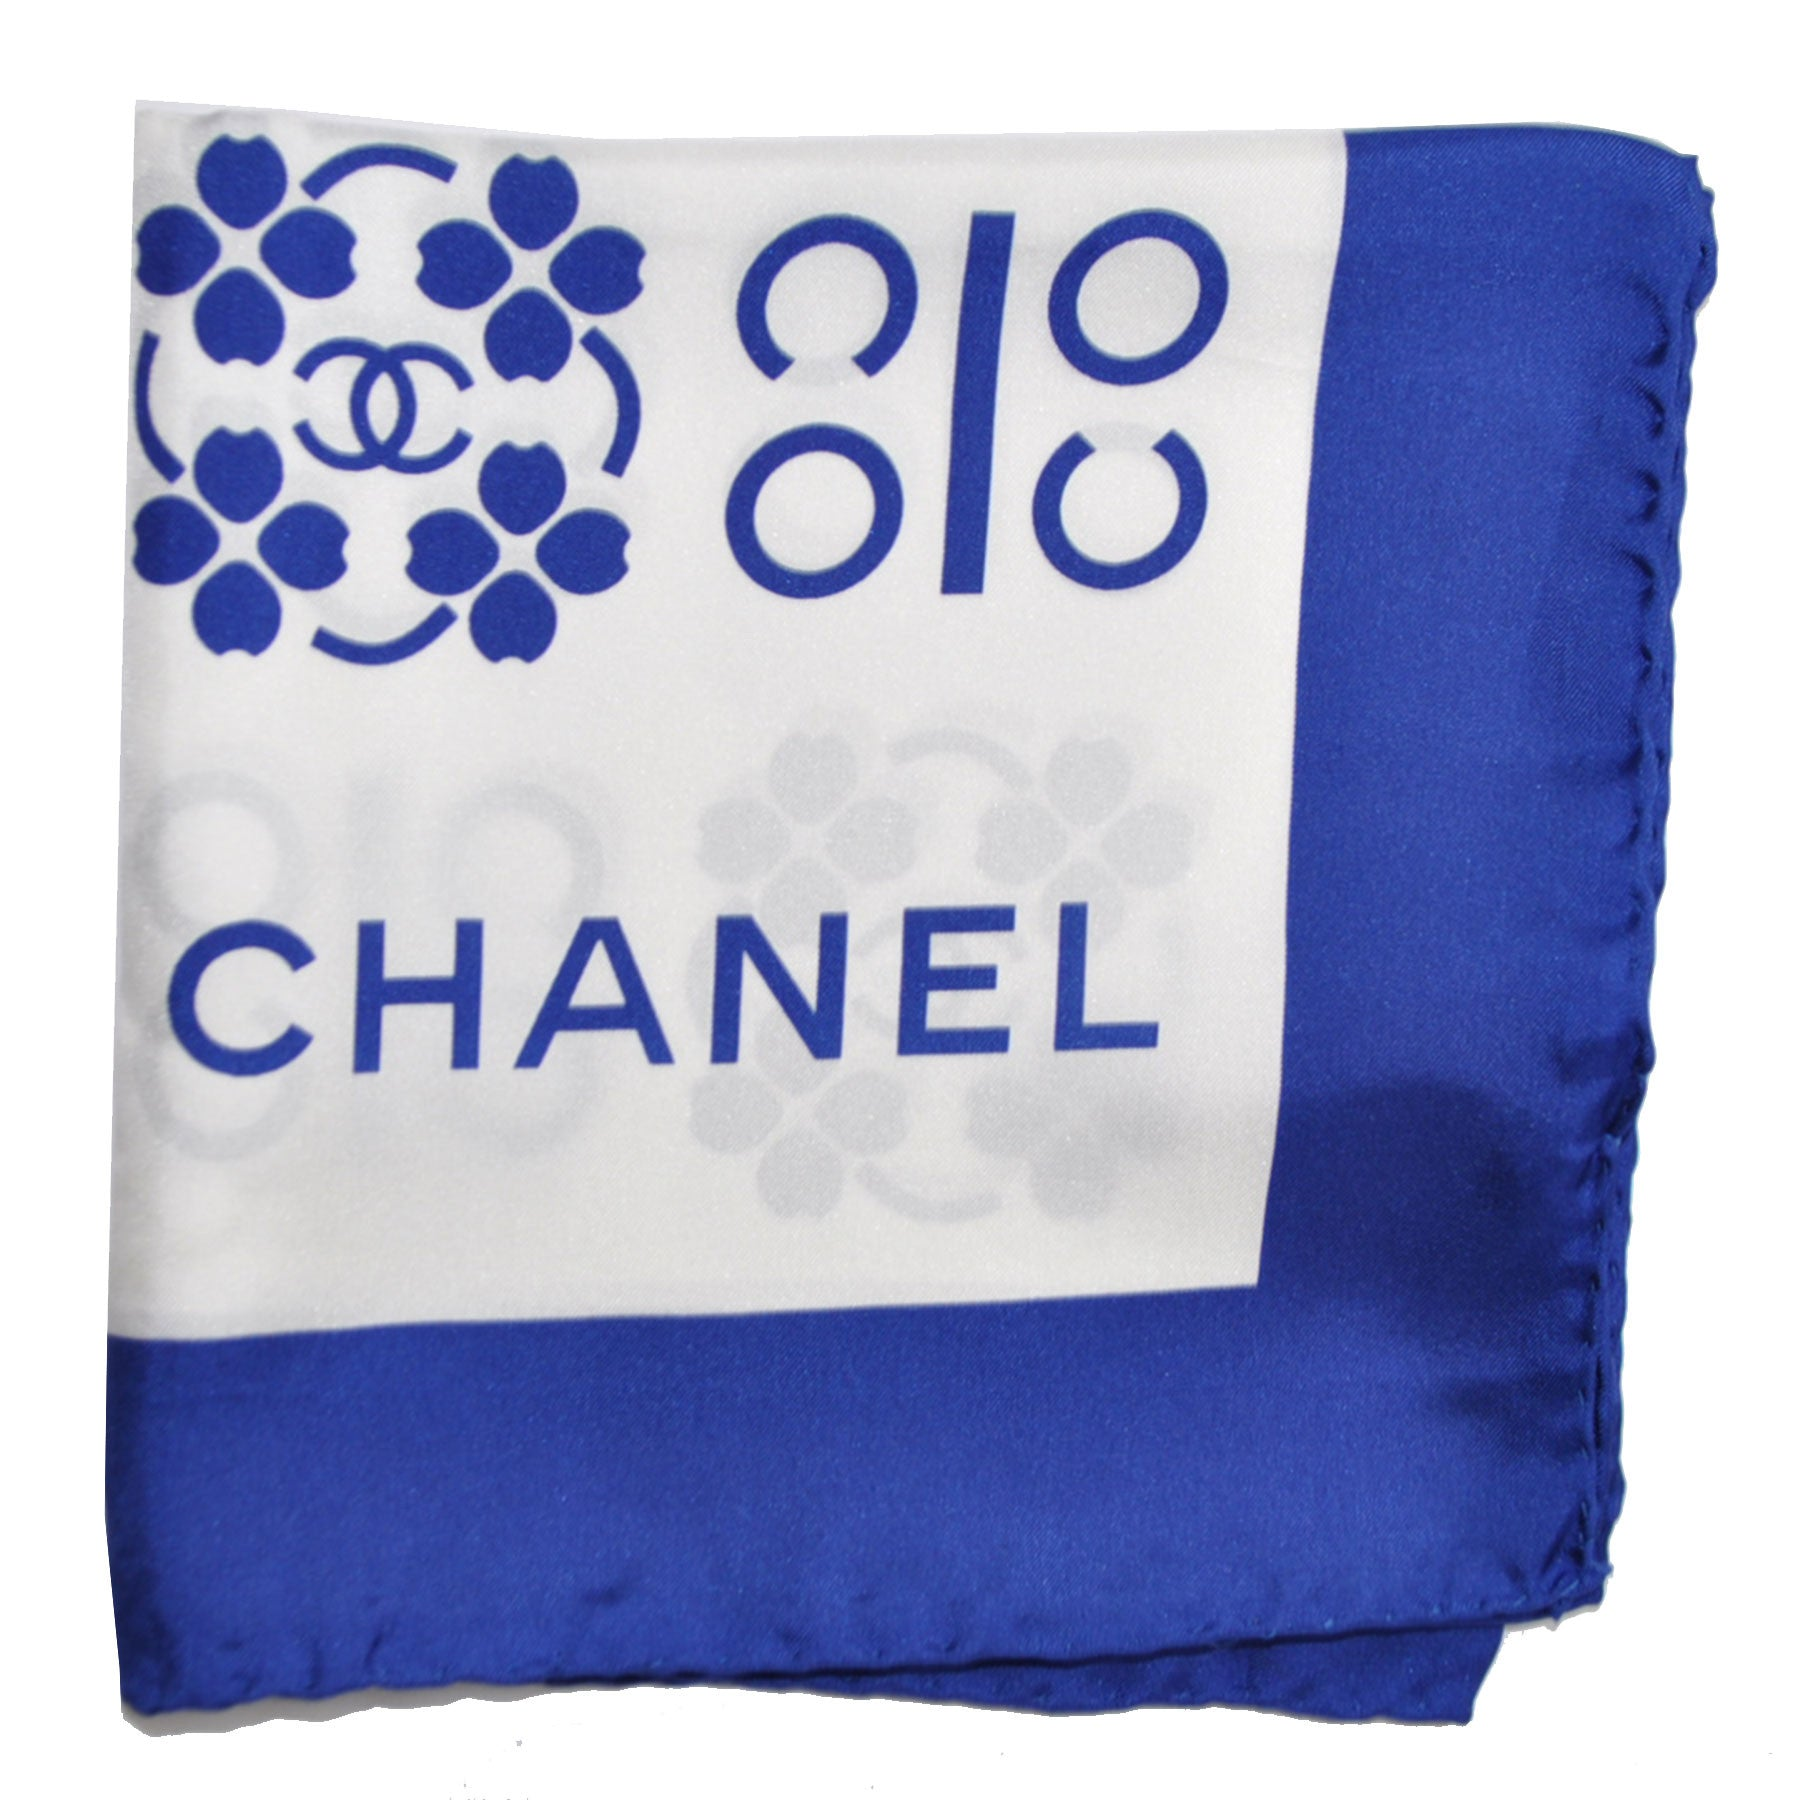 Chanel Scarf Royal Blue White CC Coco Chanel Logo